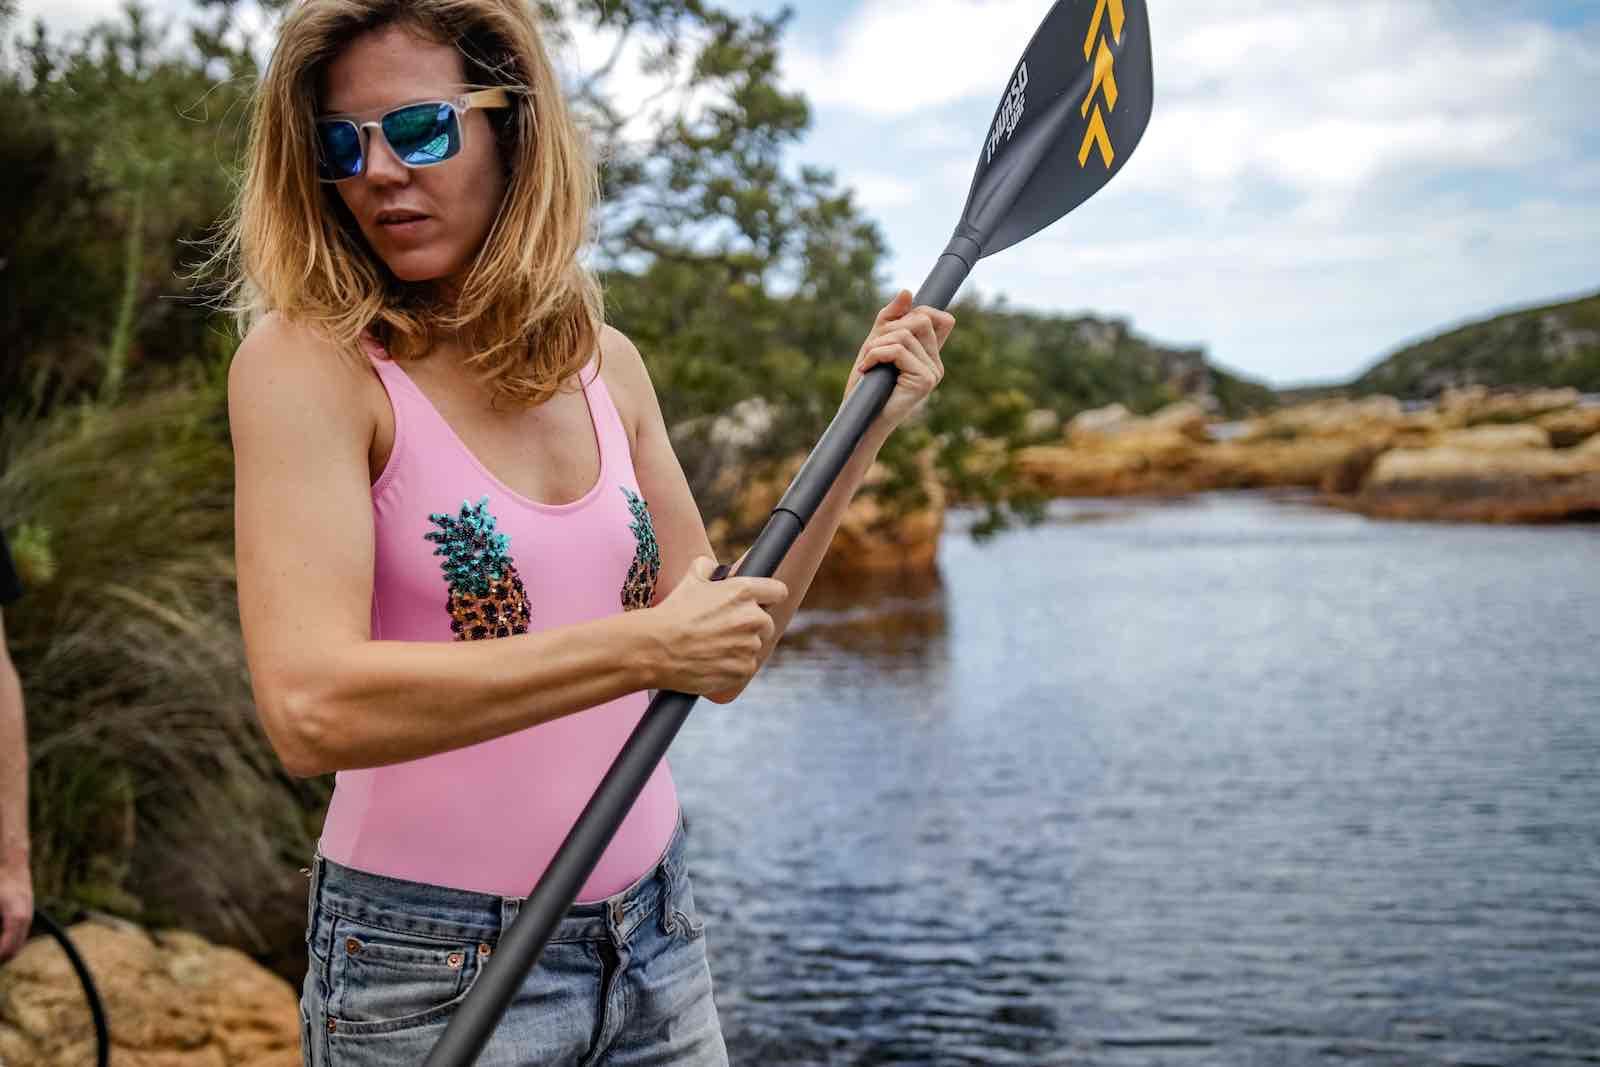 How to Hold a SUP Paddle